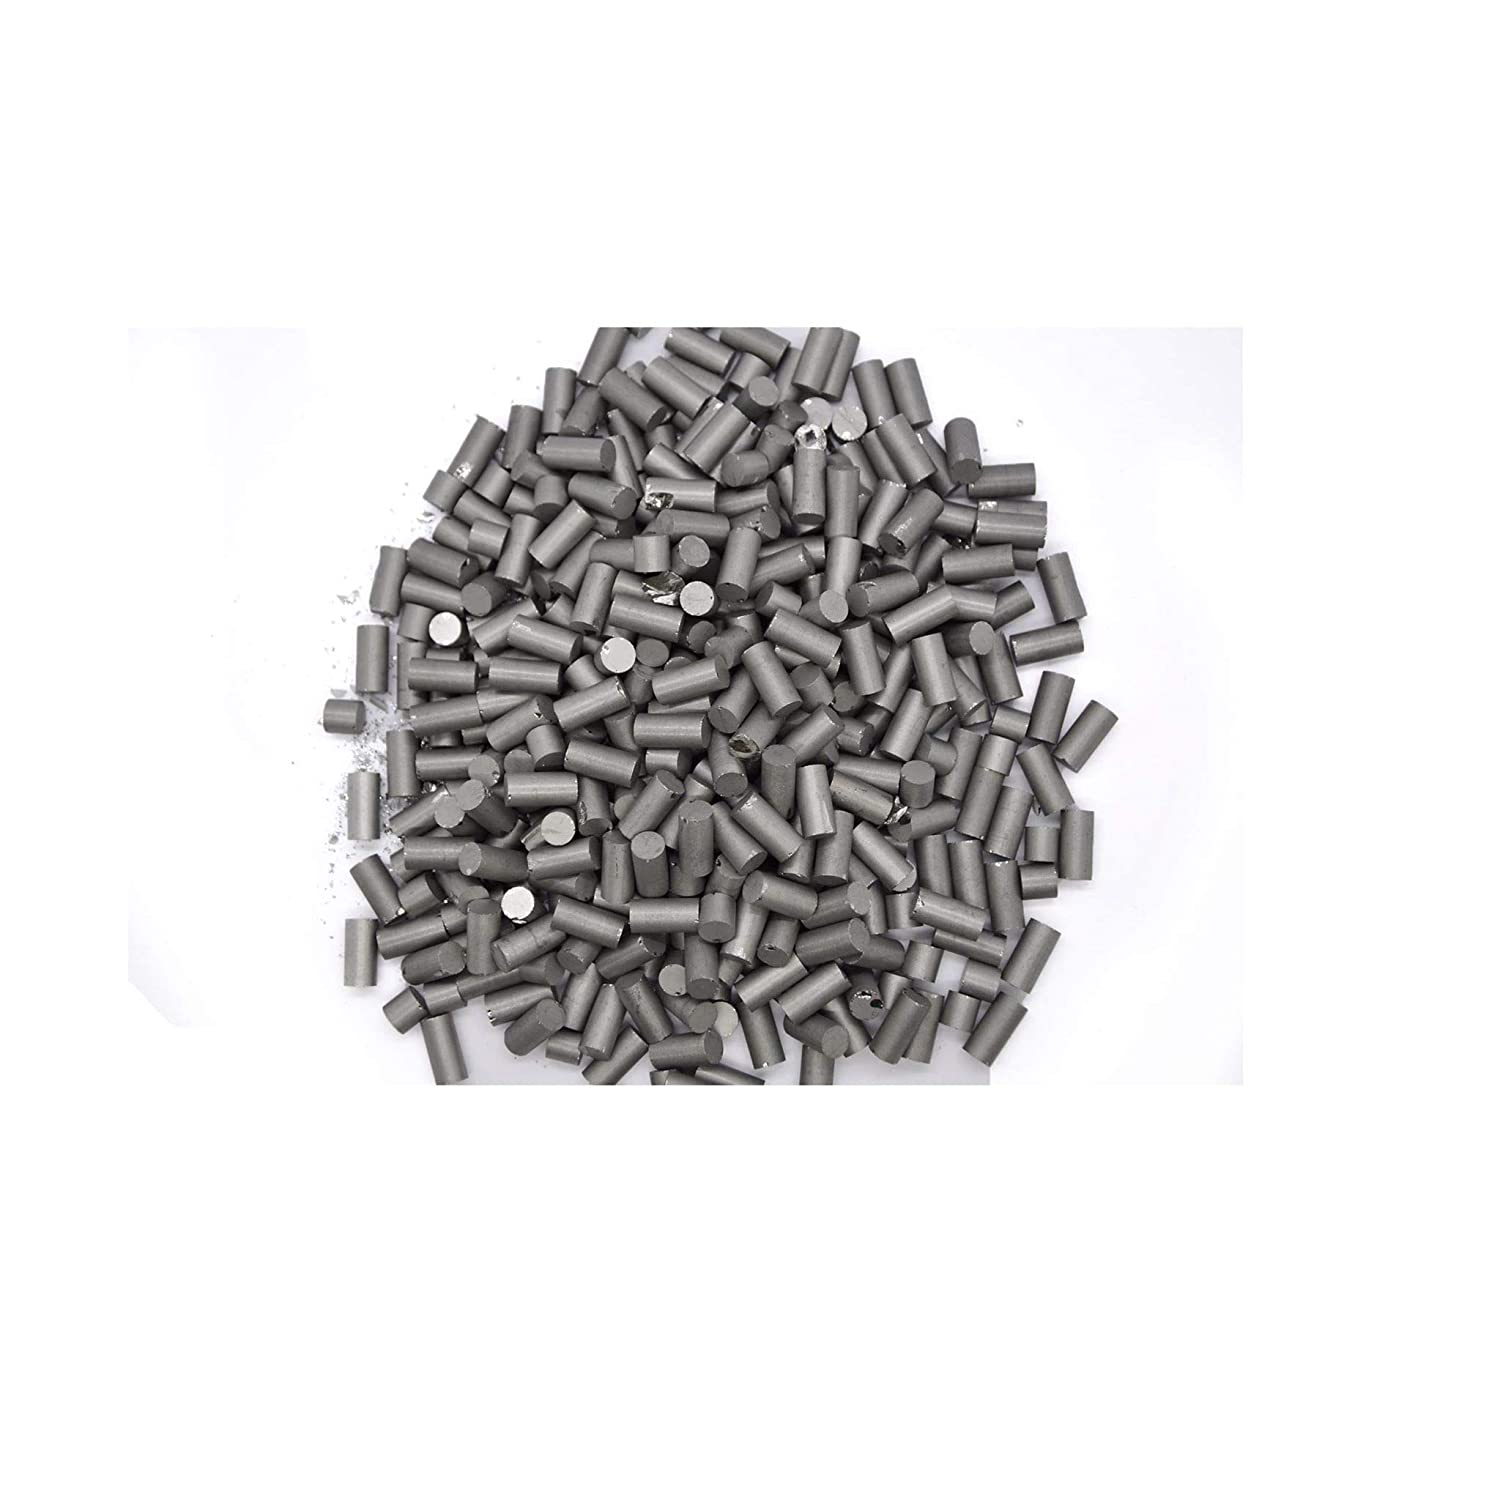 Germanium Metal 99.999% Pure – Selling and selling 12mm Sized Pieces Inexpensive